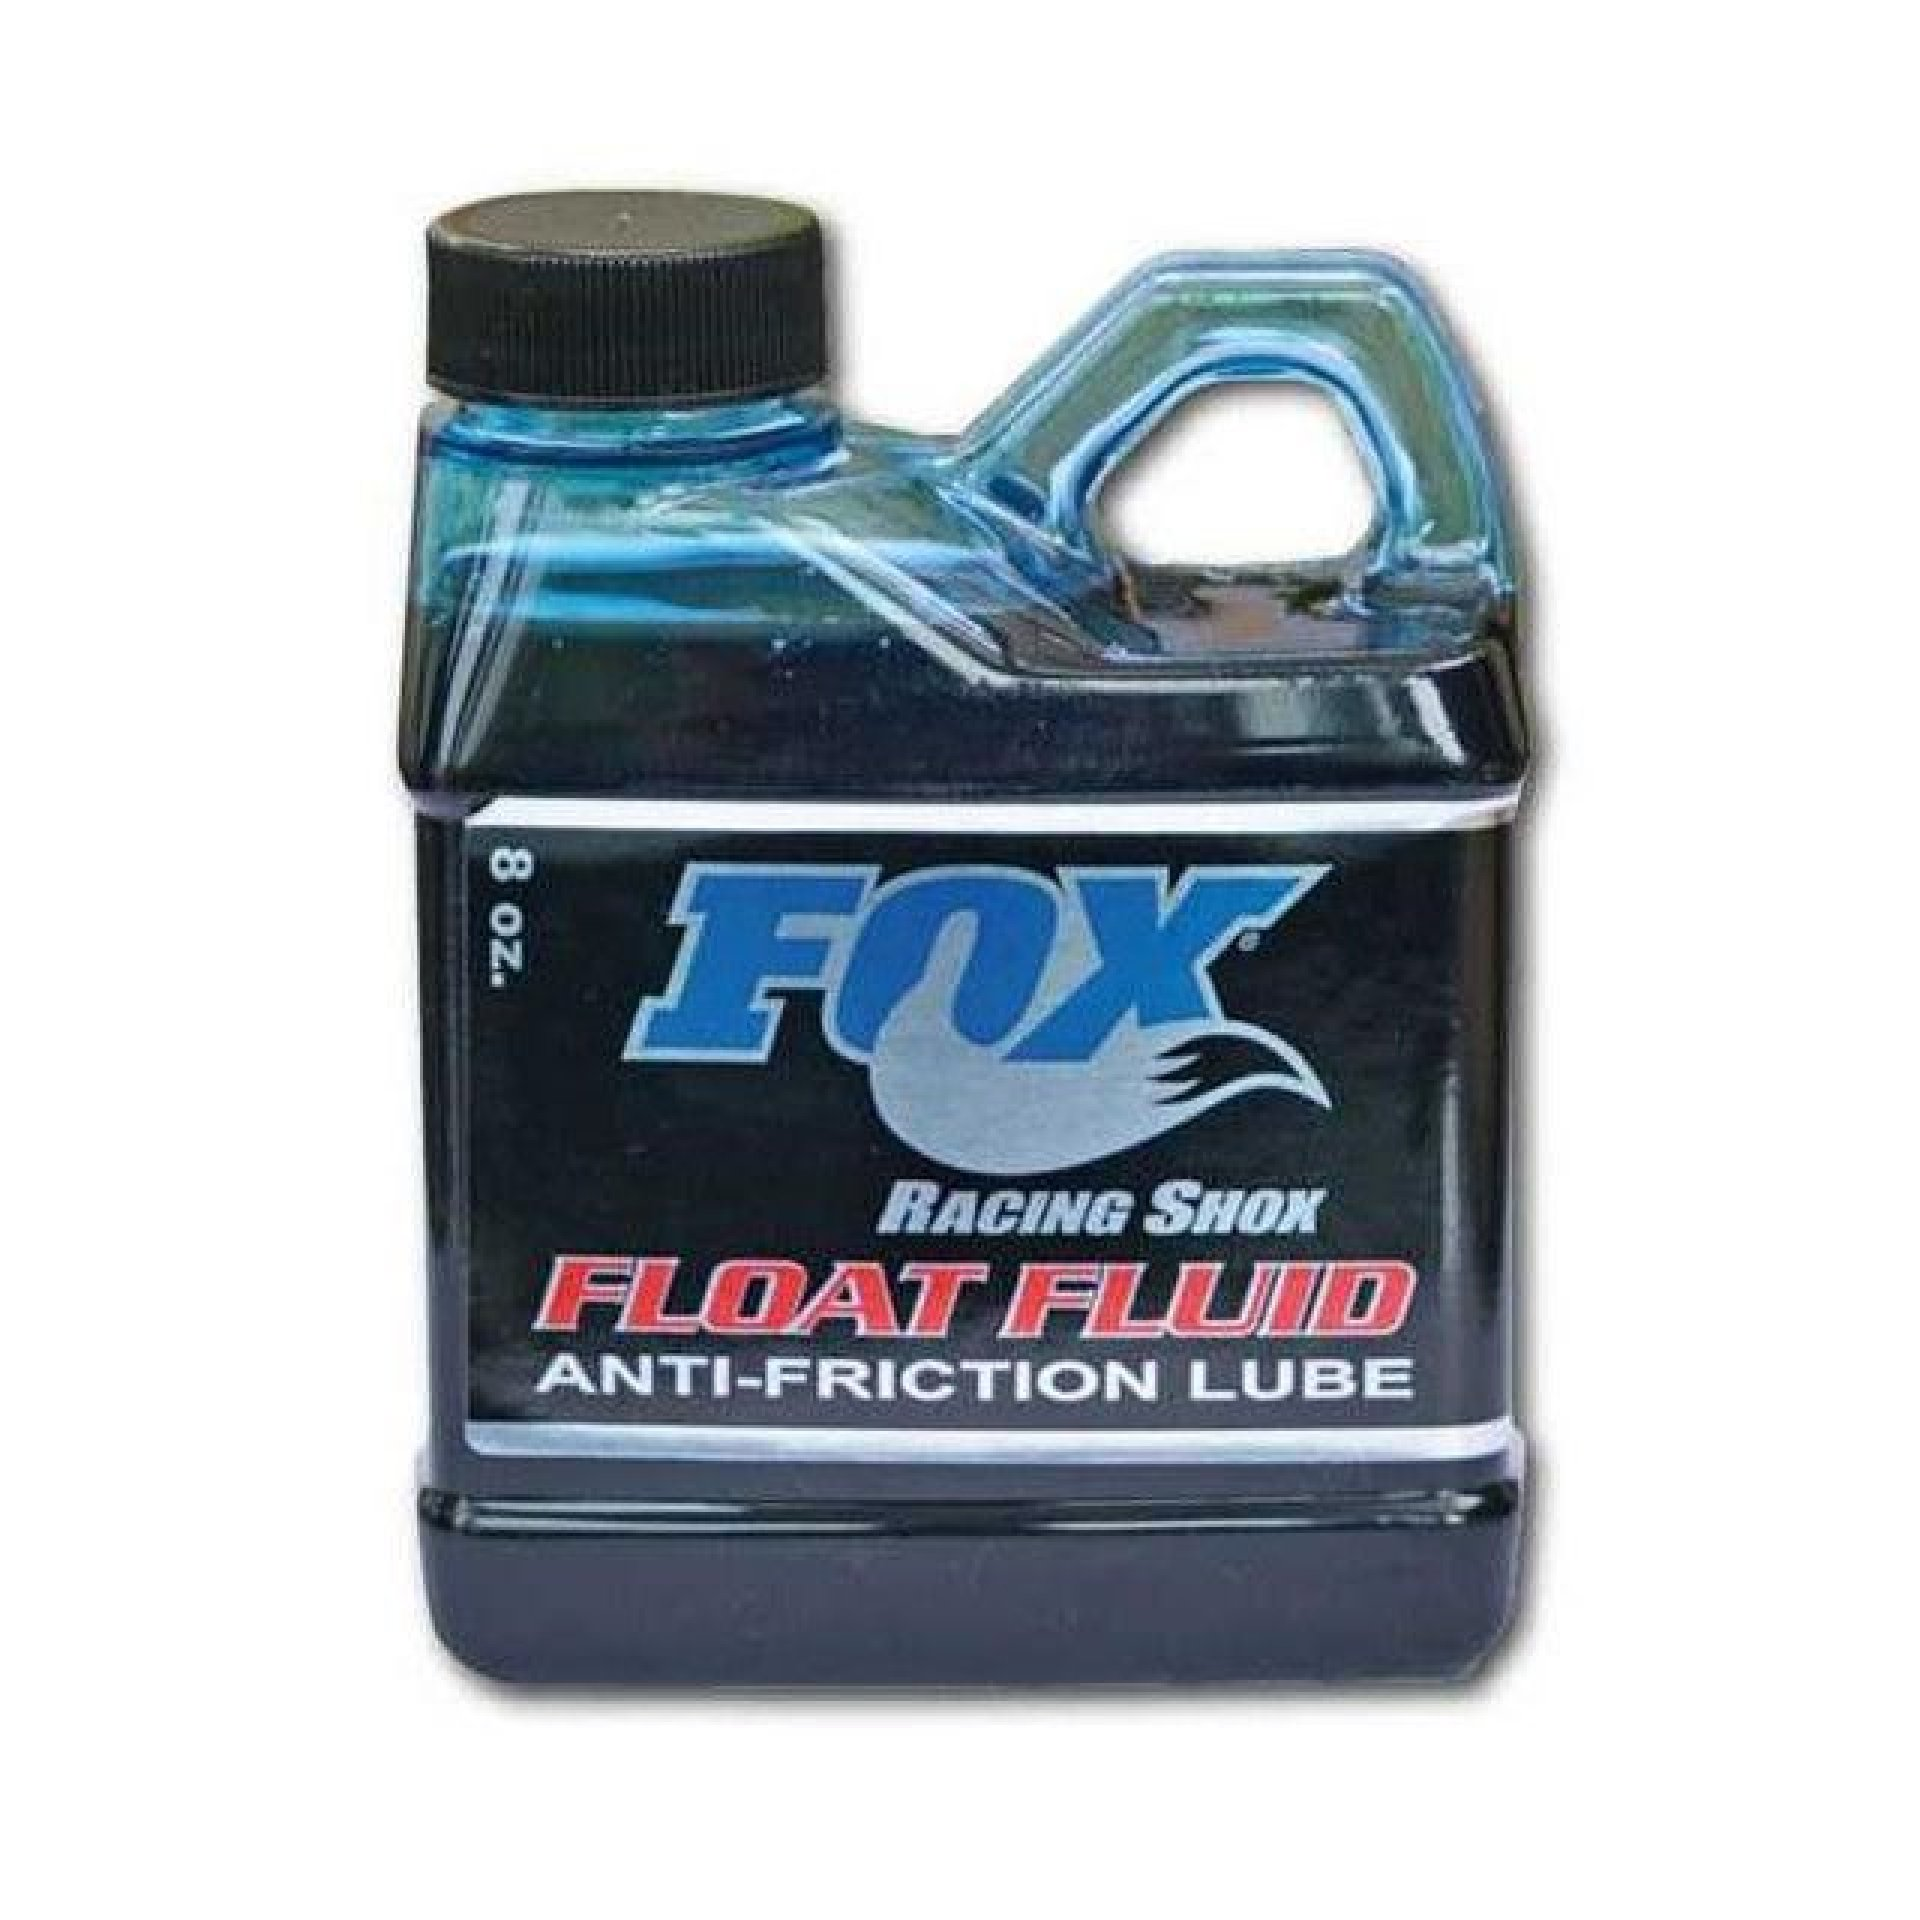 OLEJ DO AMORTYZATORÓW FOX FLOAT FLUID 235 ML 1